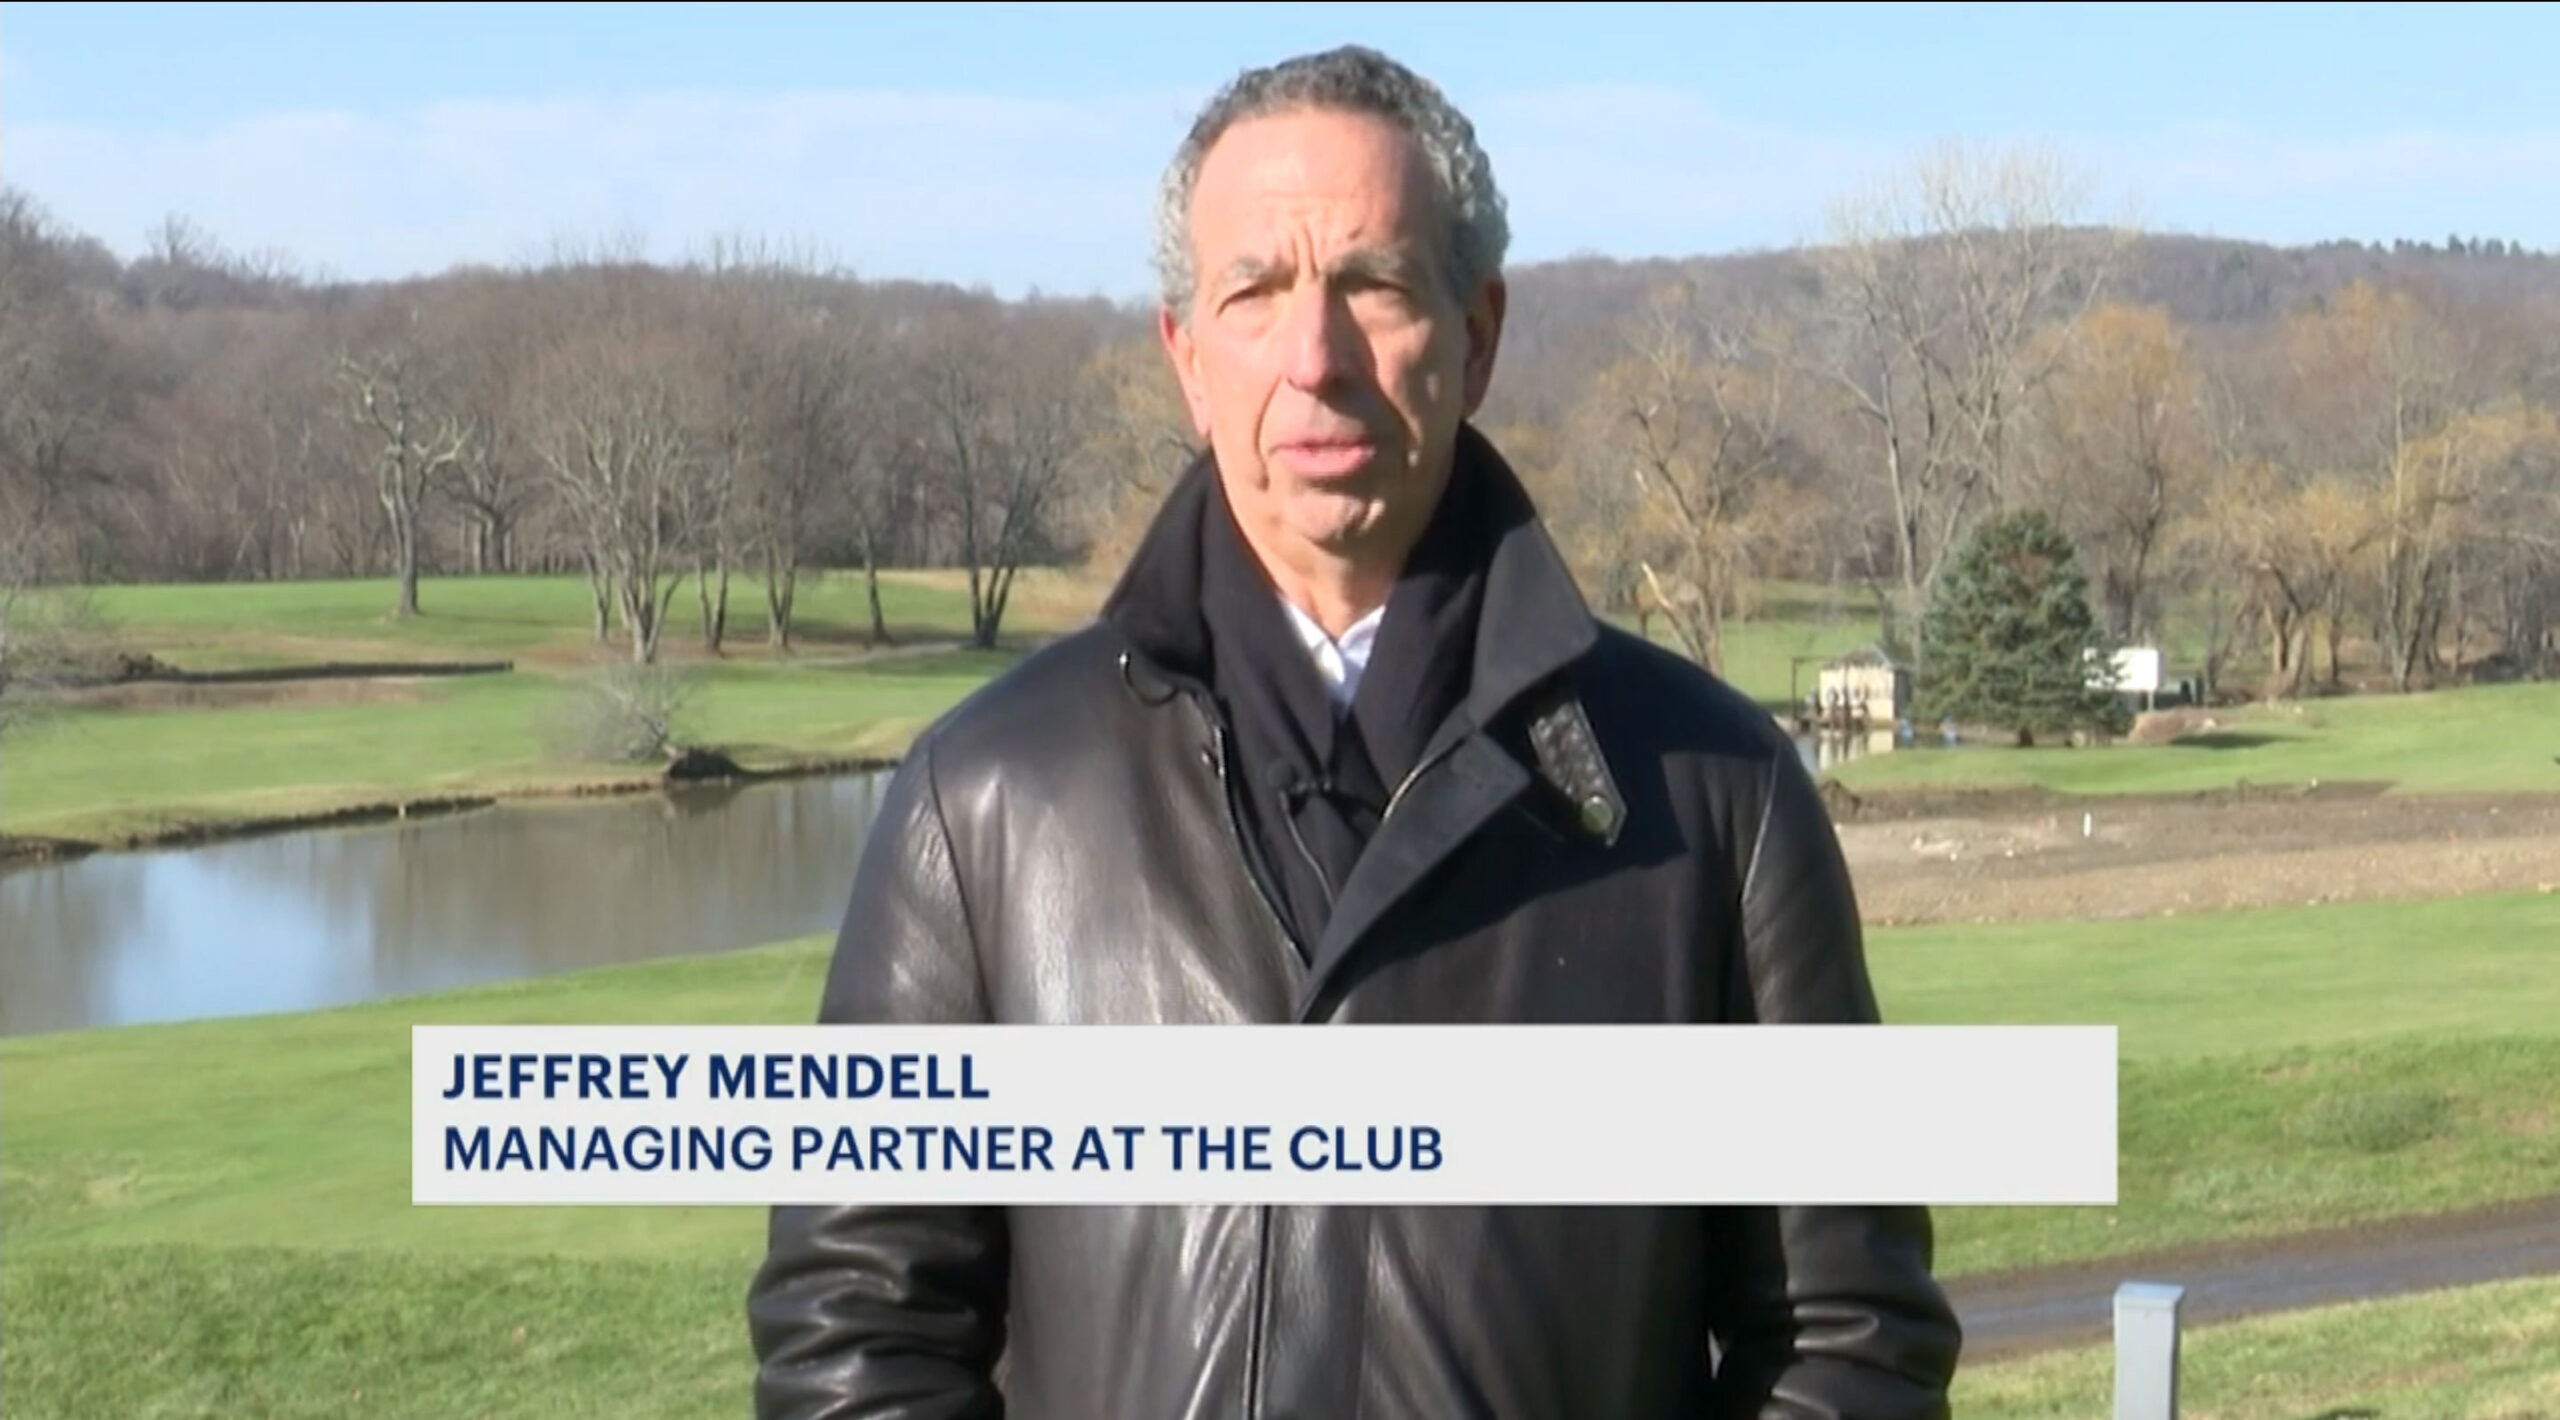 Construction underway at new Summit Club at Armonk